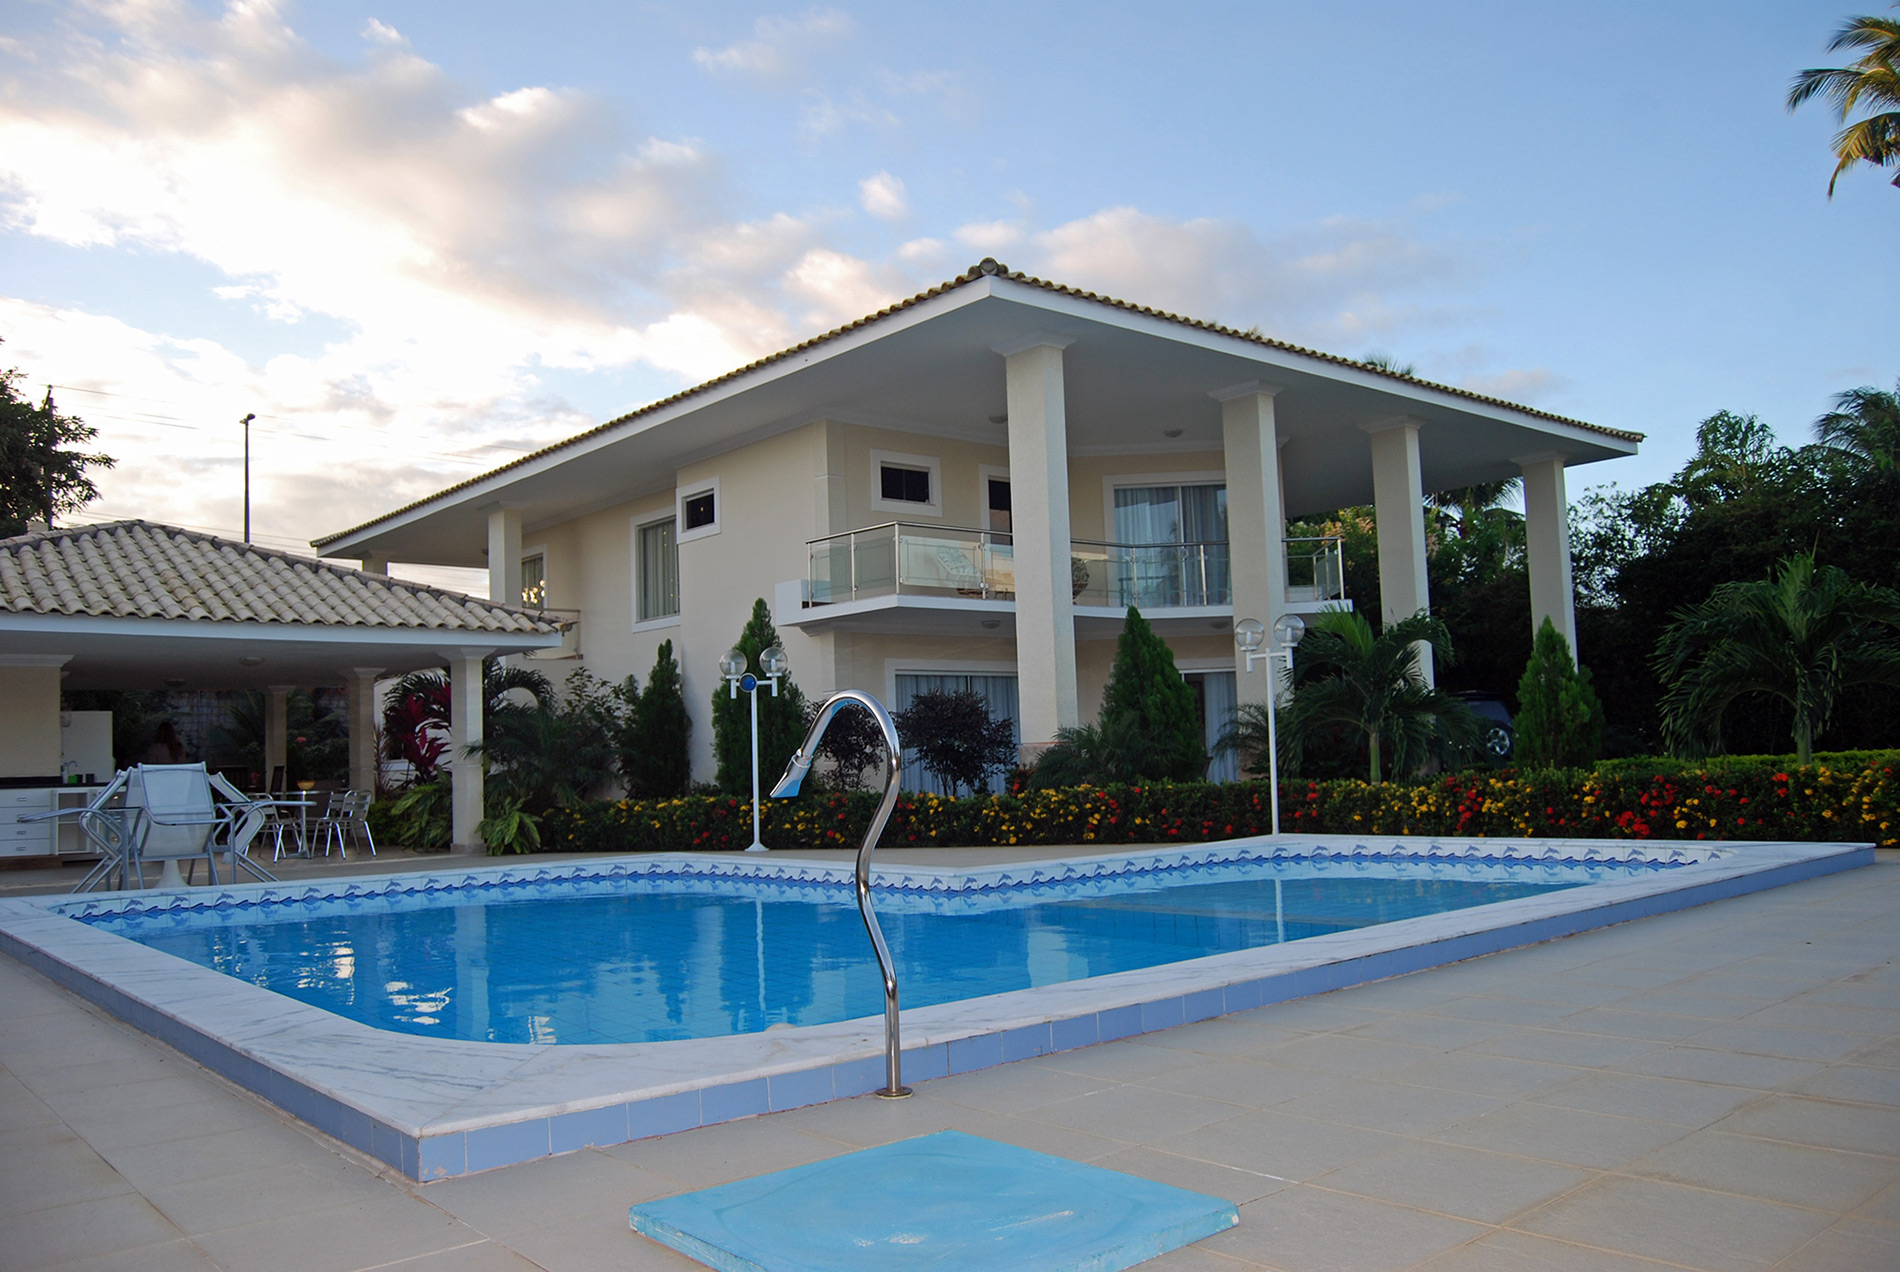 Beauty home with comfort for sale in Lauro de Freitas